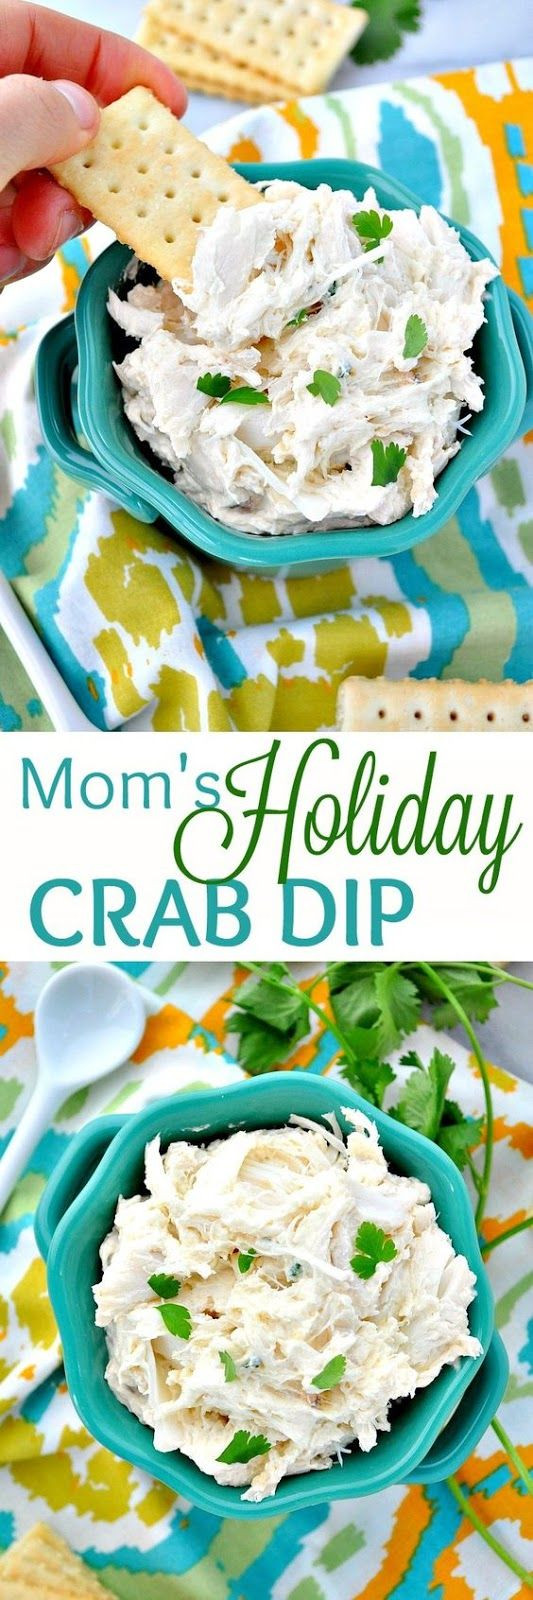 Cold Christmas Appetizers  Mom's Holiday Crab Dip Recipe Dips